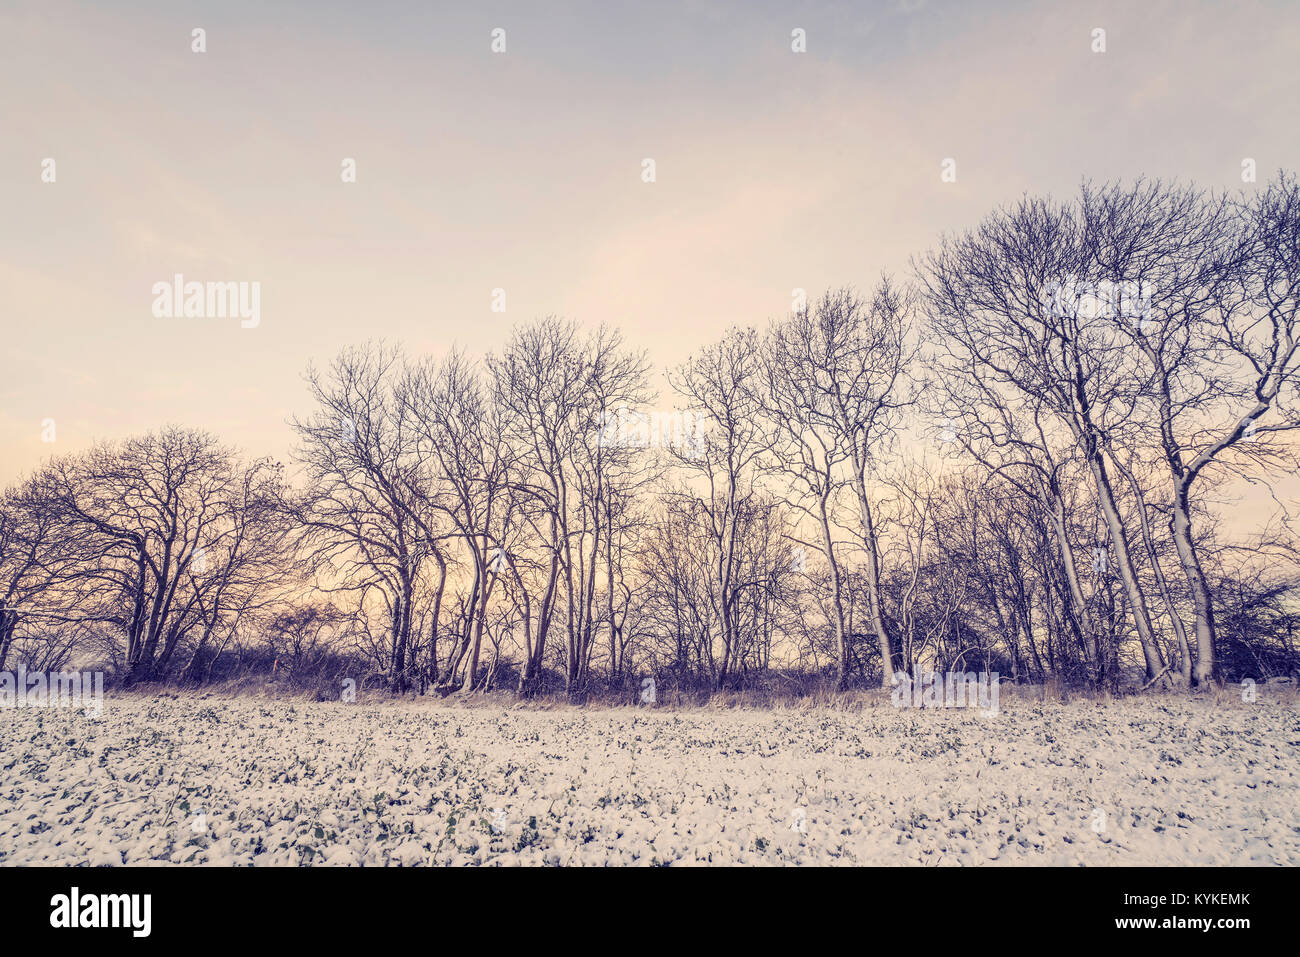 Winter scenery with trees on a row in the morning sunrise with snow on the branches - Stock Image